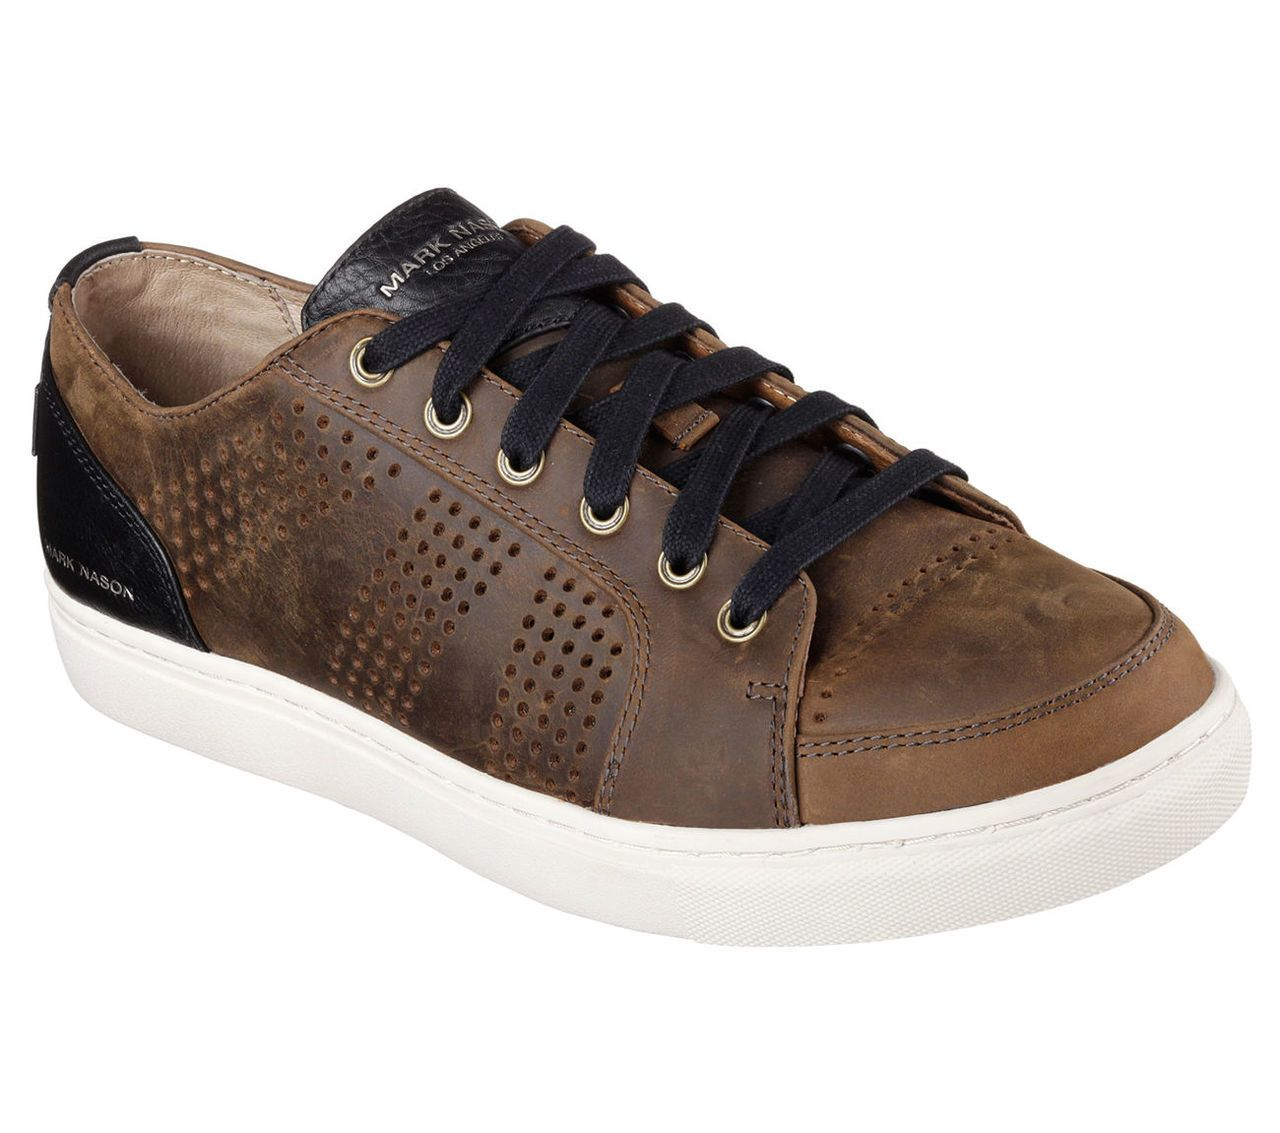 Mark nason by skechers mens trainers available in half